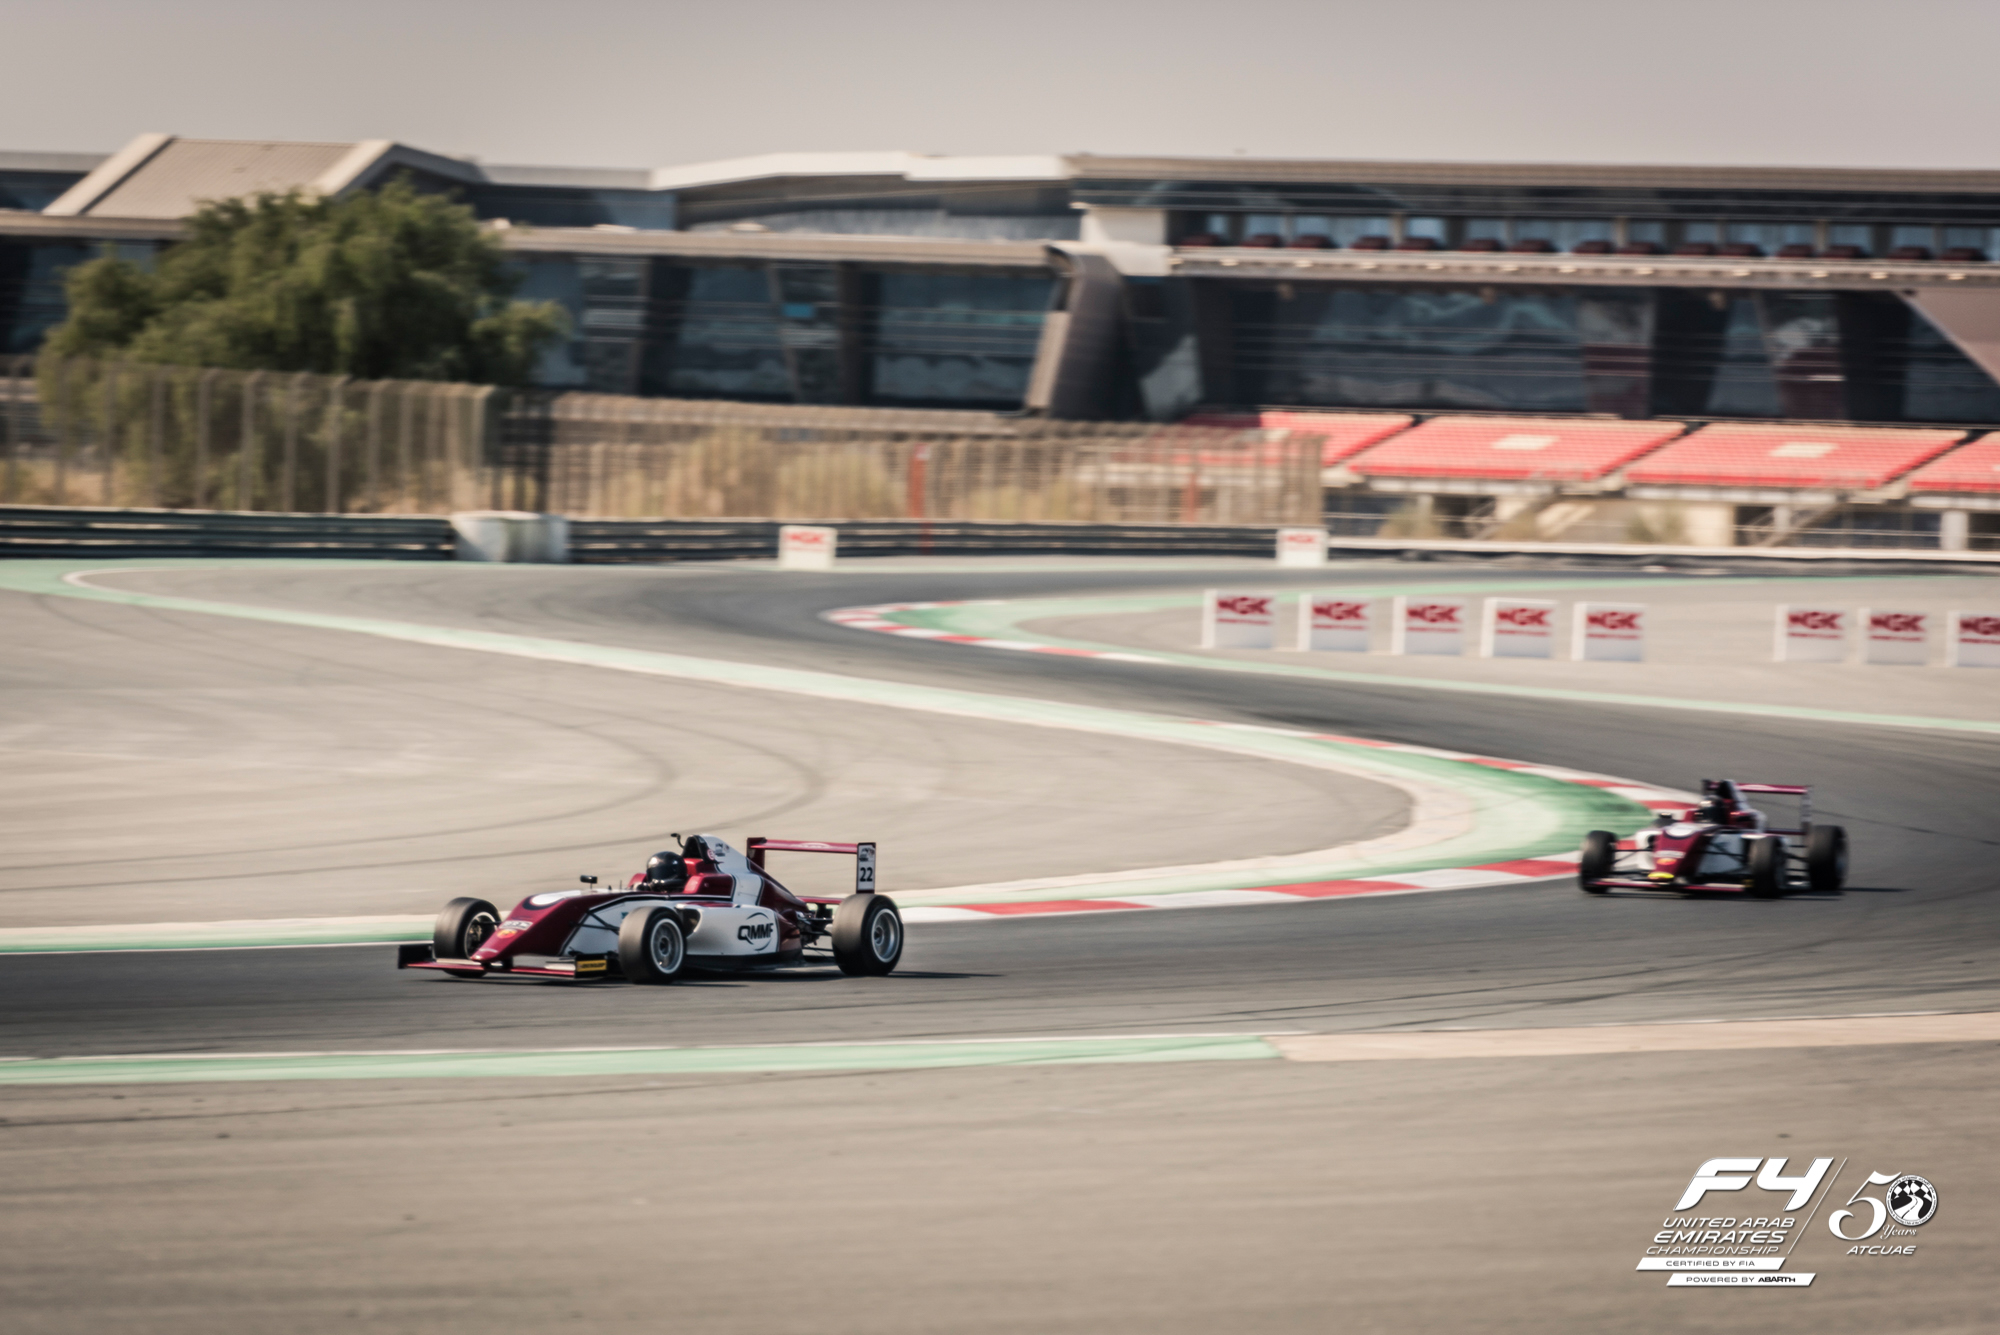 2016 10 30   Racing   Second Round   F4   Dubai    23 Of 34